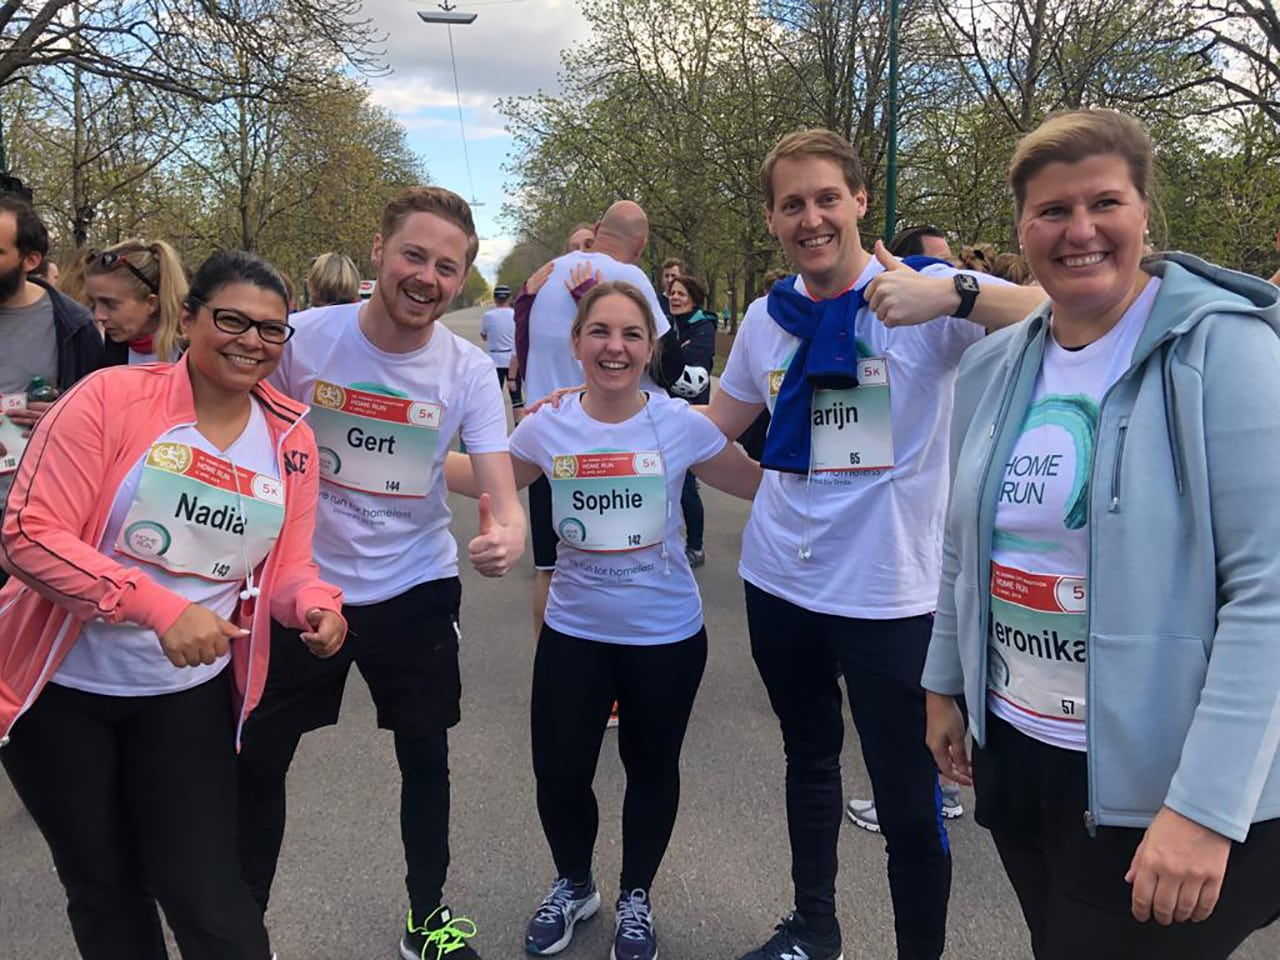 HomeRun Initiative, Spendenlauf, Charity, LäuferInnen als Team